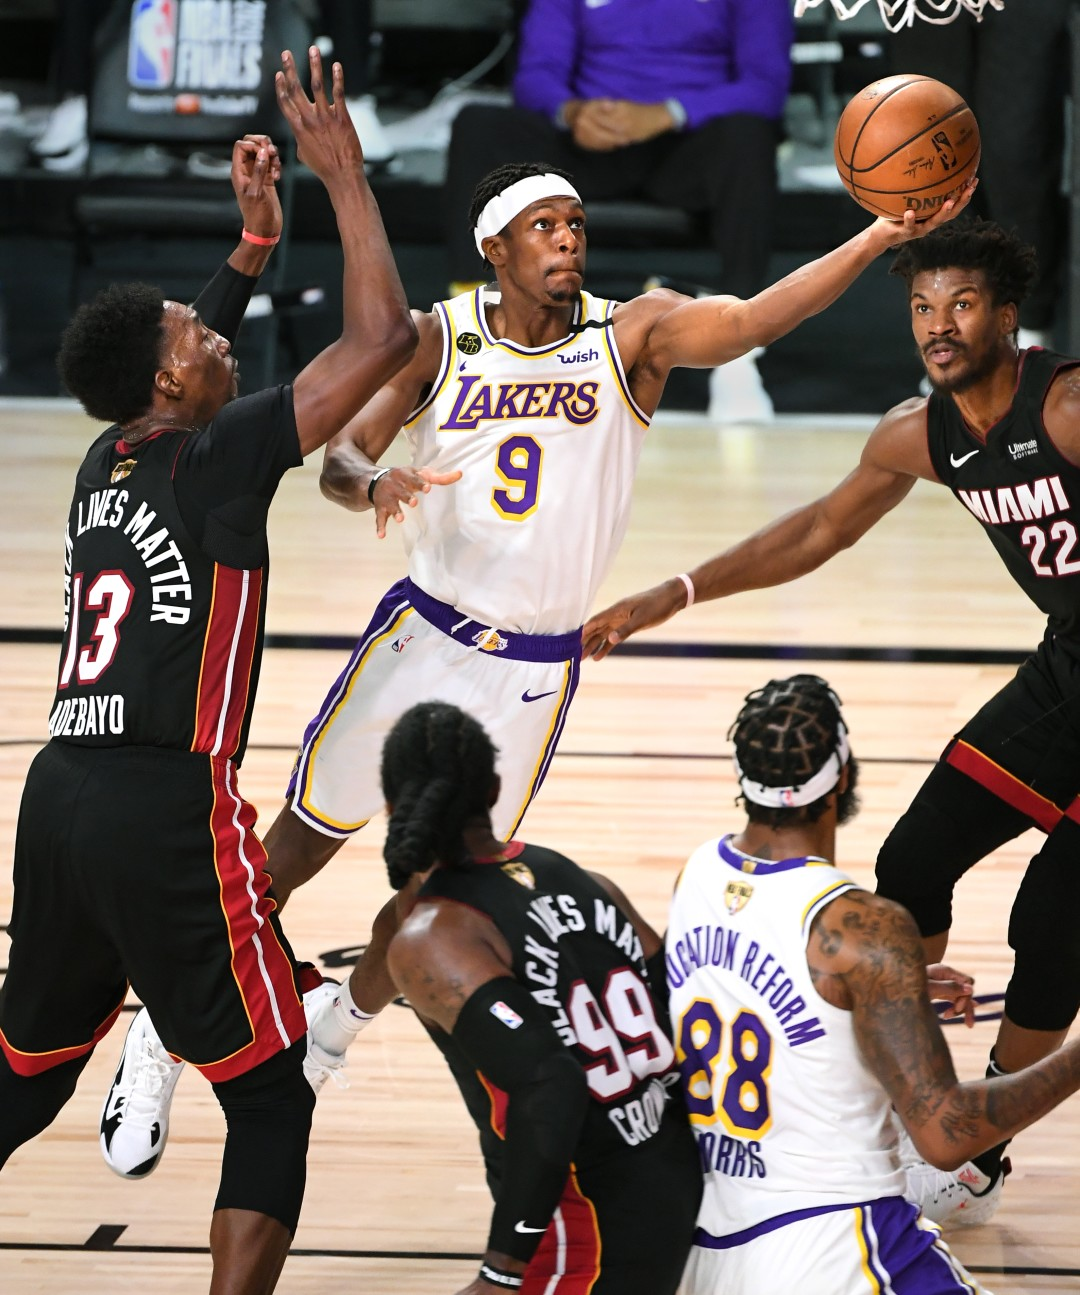 Lakers guard Rajon Rondo scores in front of Miami Heat forwards Bam Adebayo, left, and Jimmy Butler, right, during the second quarter of Game 6 of the NBA Finals on Sunday.(Wally Skalij / Los Angeles Times)